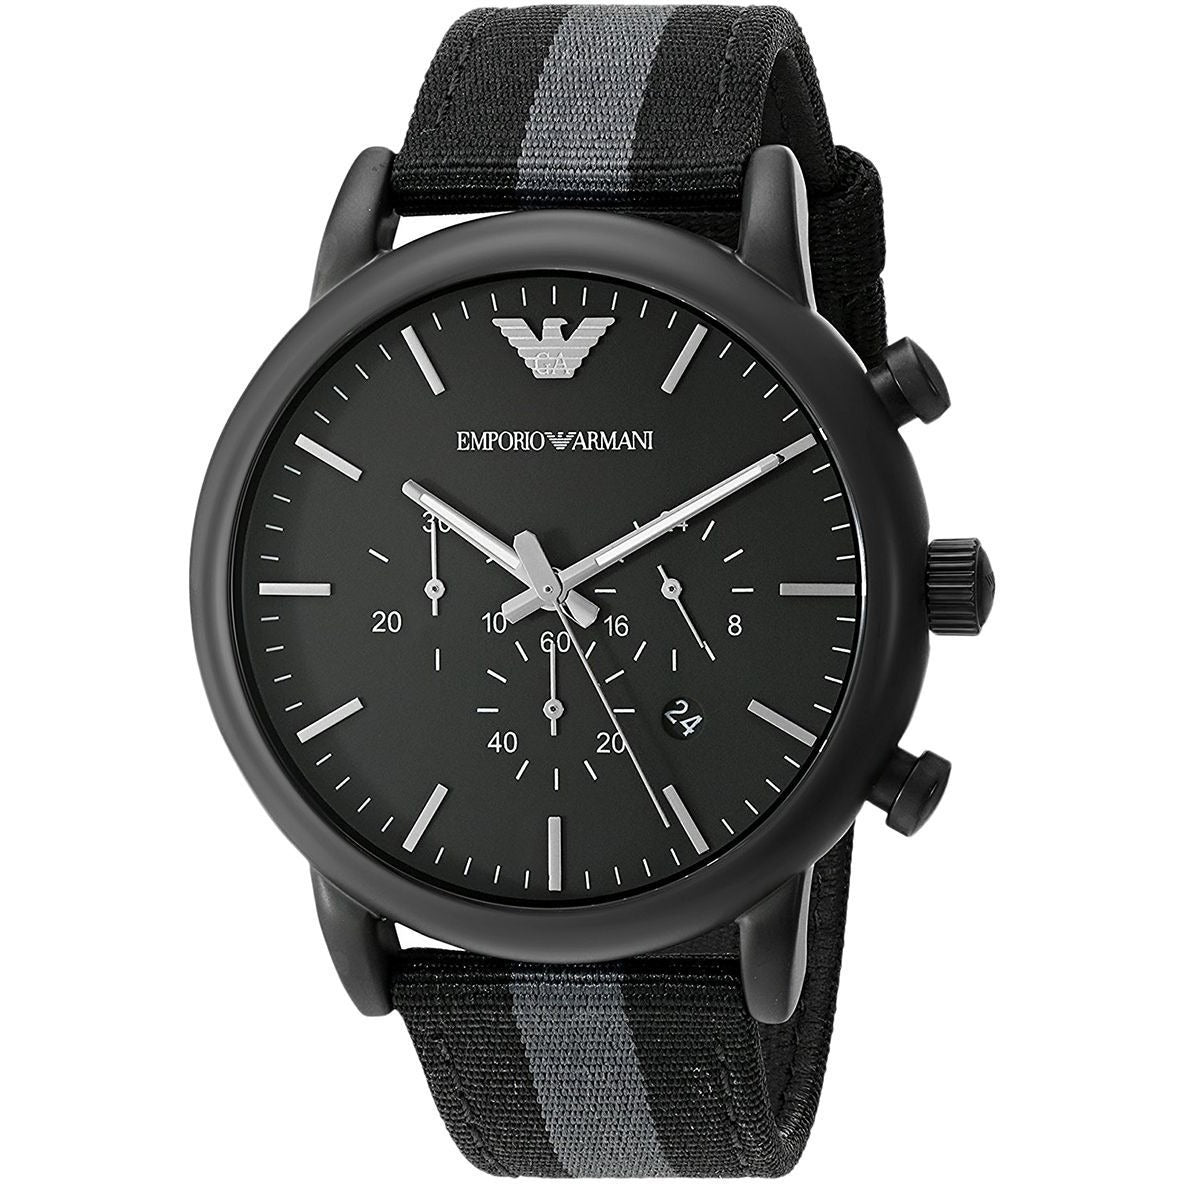 Emporio Armani Men's Black Dial Leather Band Watch - AR1948